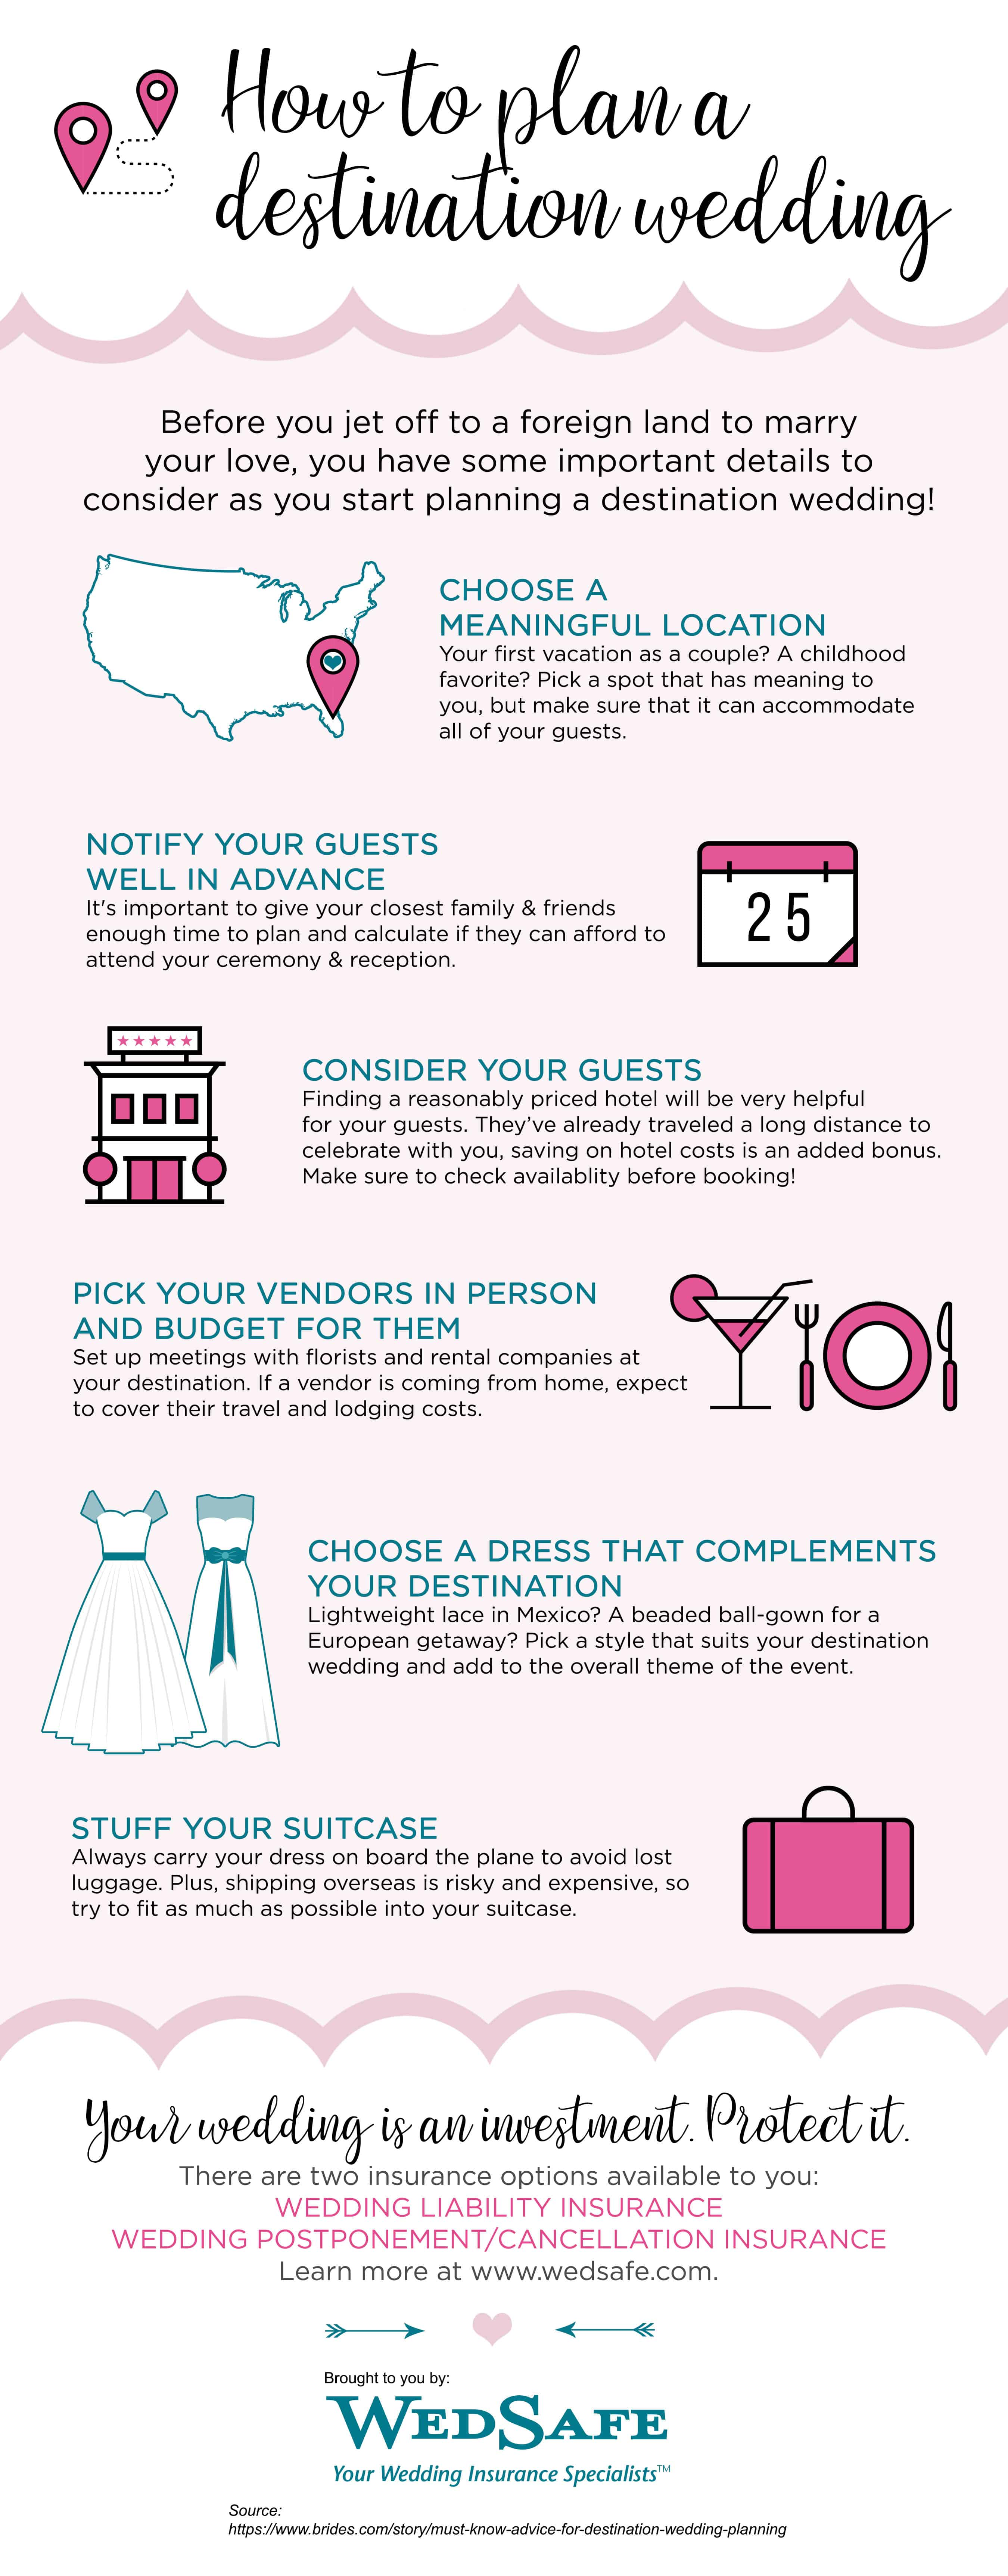 Tips For Planning A Destination Wedding Daily Infographic